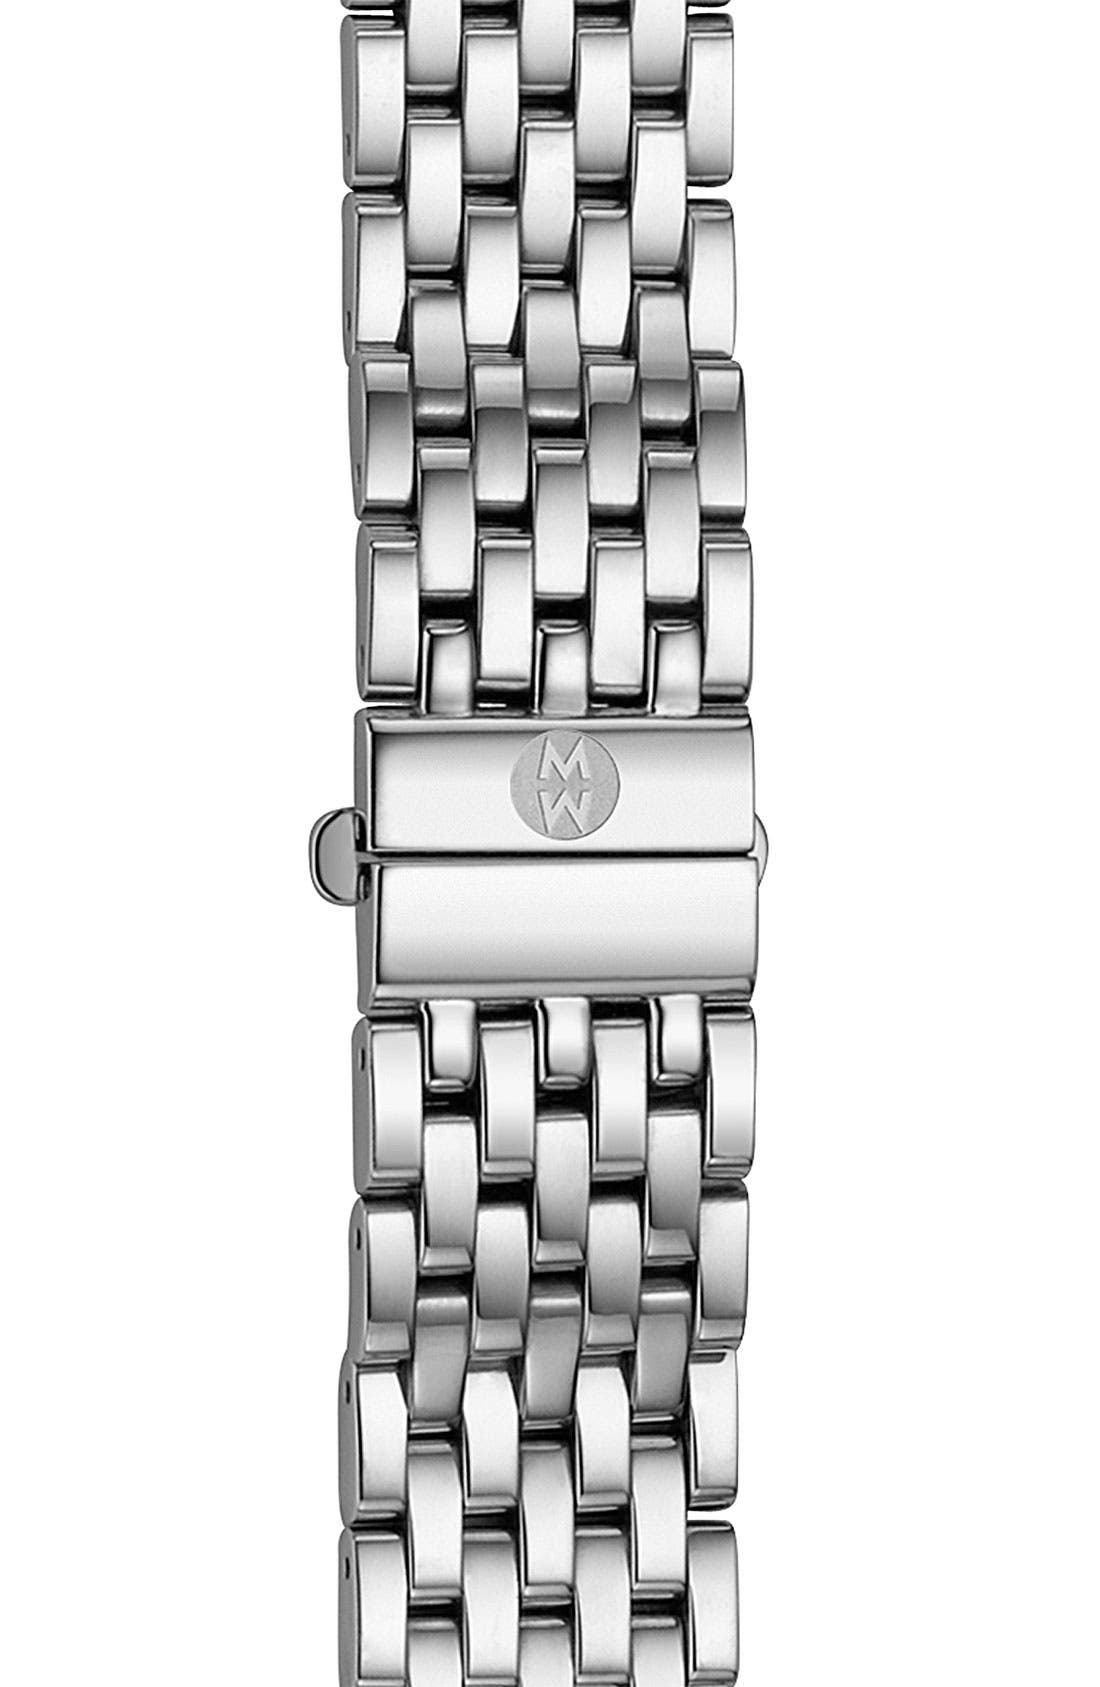 Main Image - MICHELE 'Cloette Fleur' 16mm Watch Bracelet